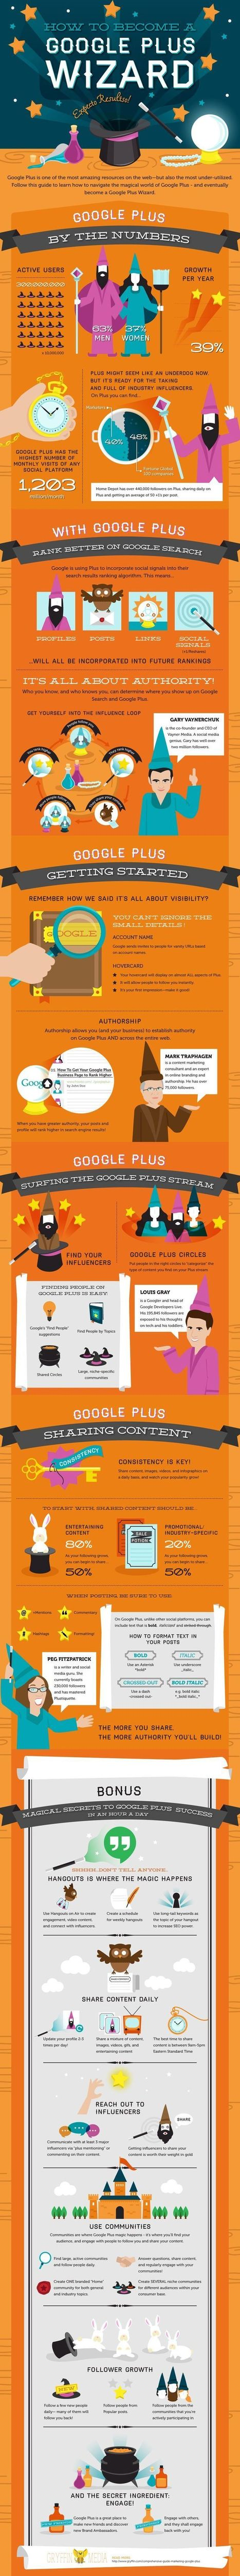 How To Become A Google Plus Wizard [Infographics] | digital marketing strategy | Scoop.it